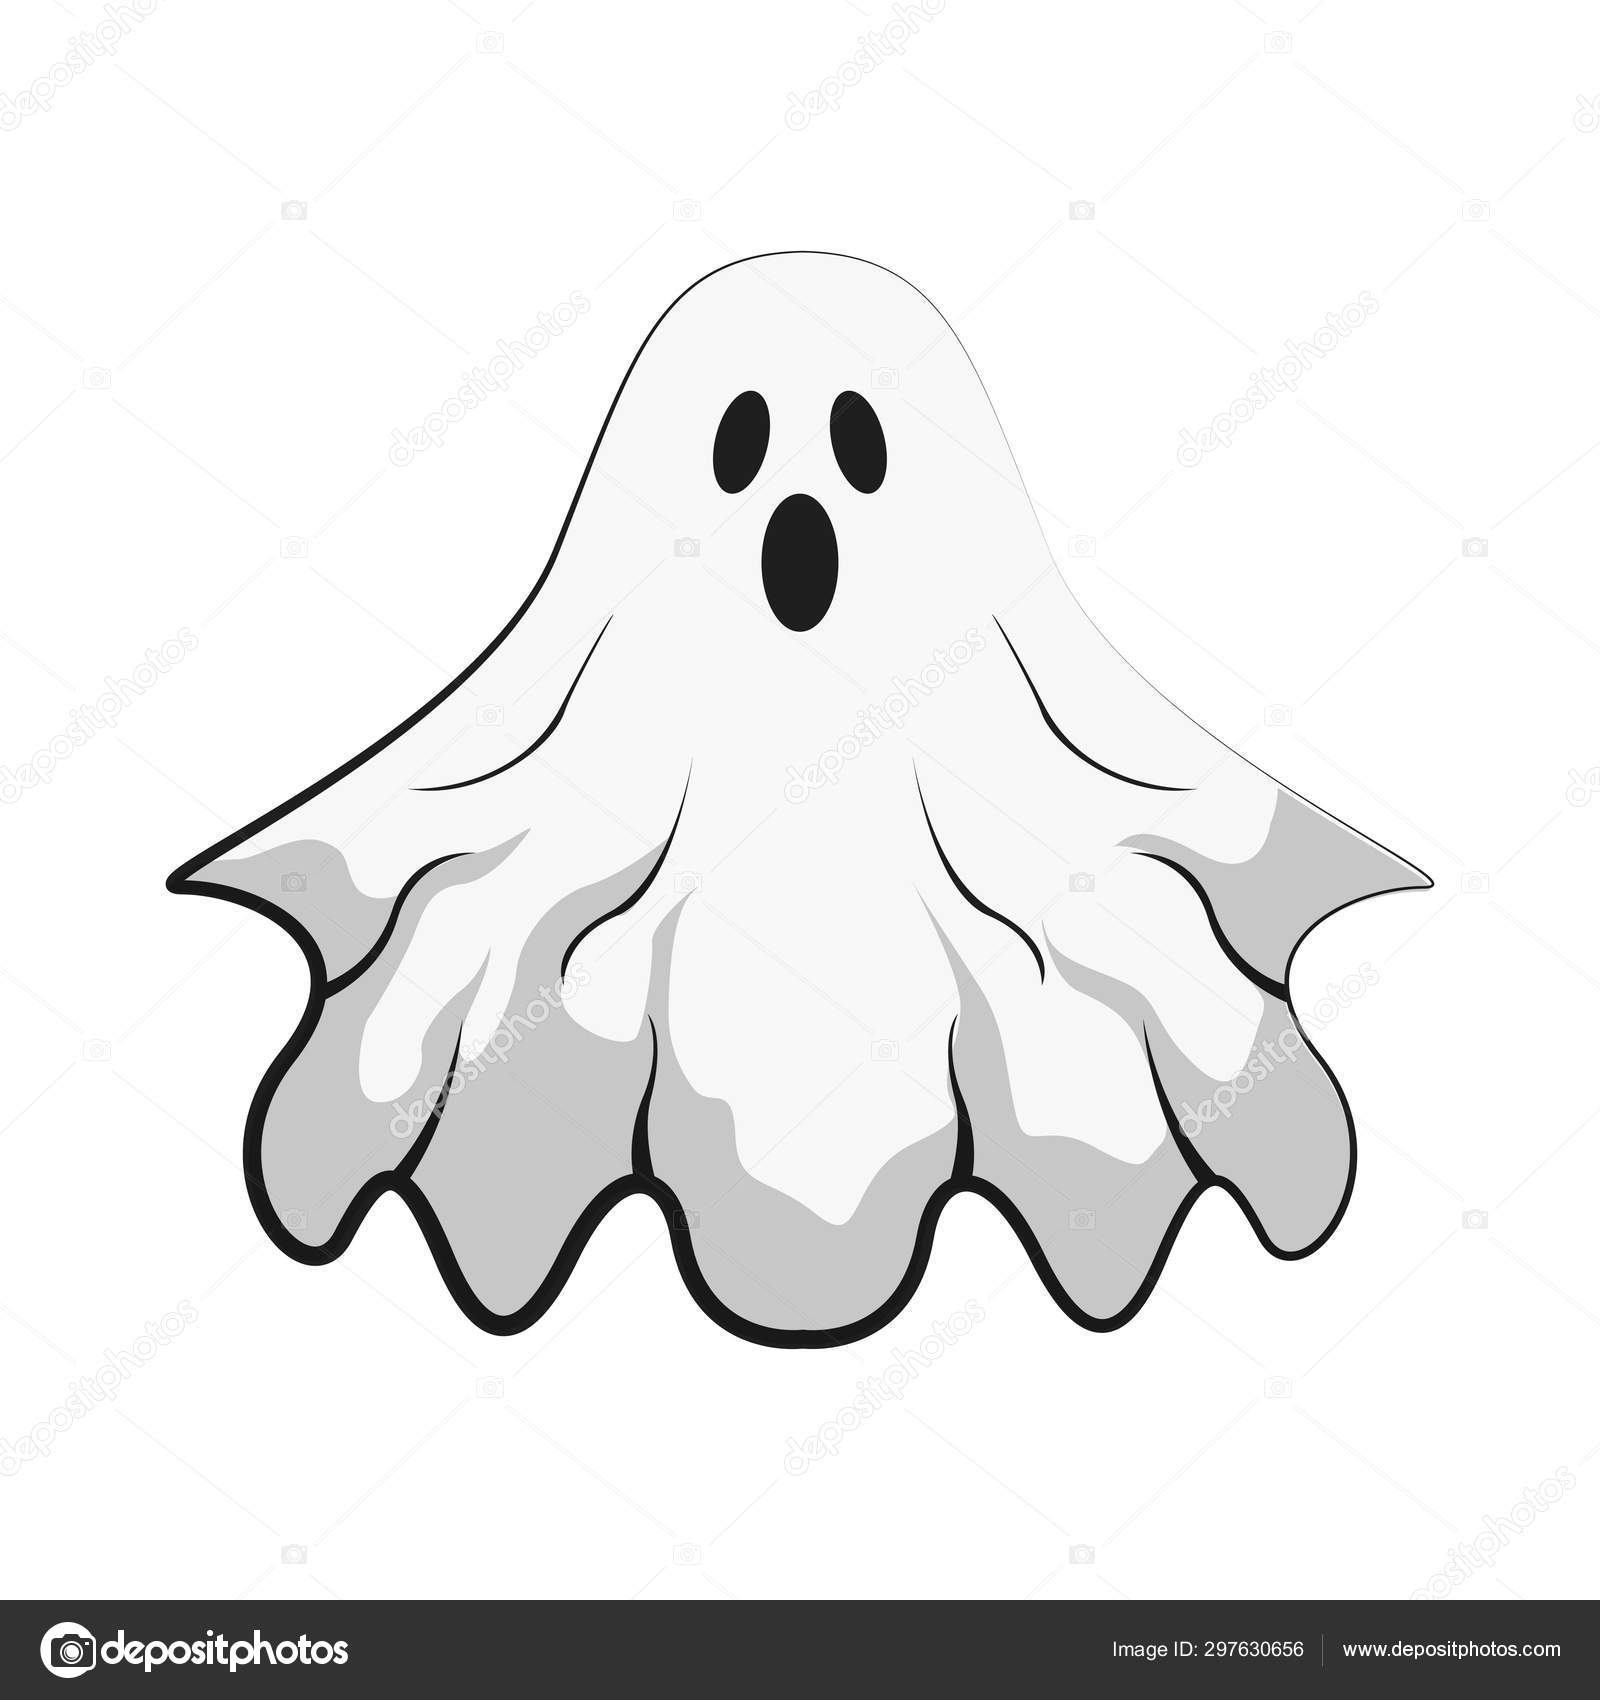 Illustration Cartoon Scary Ghost Cute Ghost Cartoon Stock Vector C Ramades 297630656 Submitted 3 years ago by sayonarahonto. illustration cartoon scary ghost cute ghost cartoon stock vector c ramades 297630656